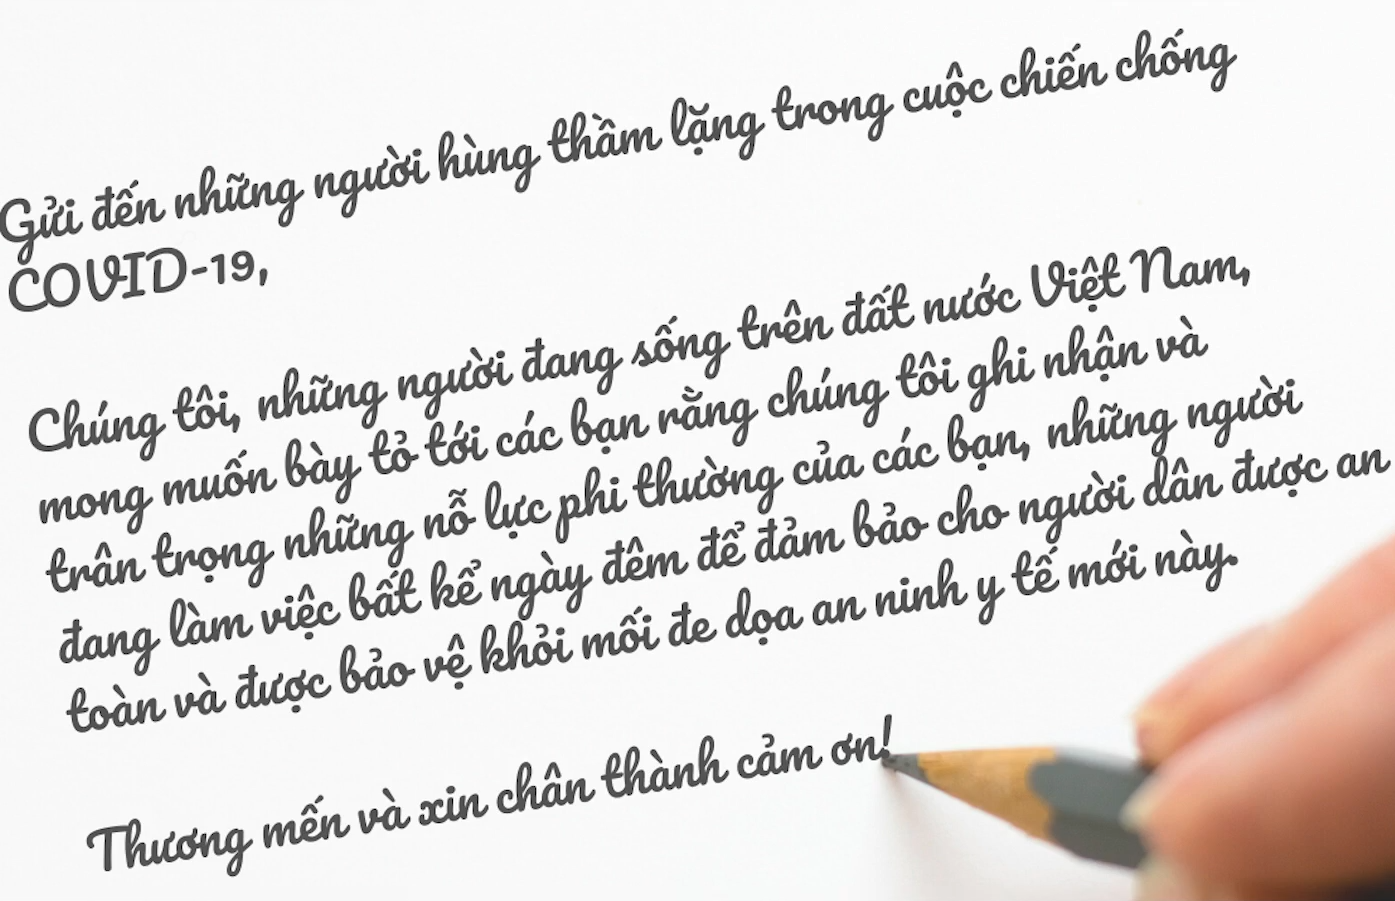 WHO thanks Vietnamese fighters of Covid-19